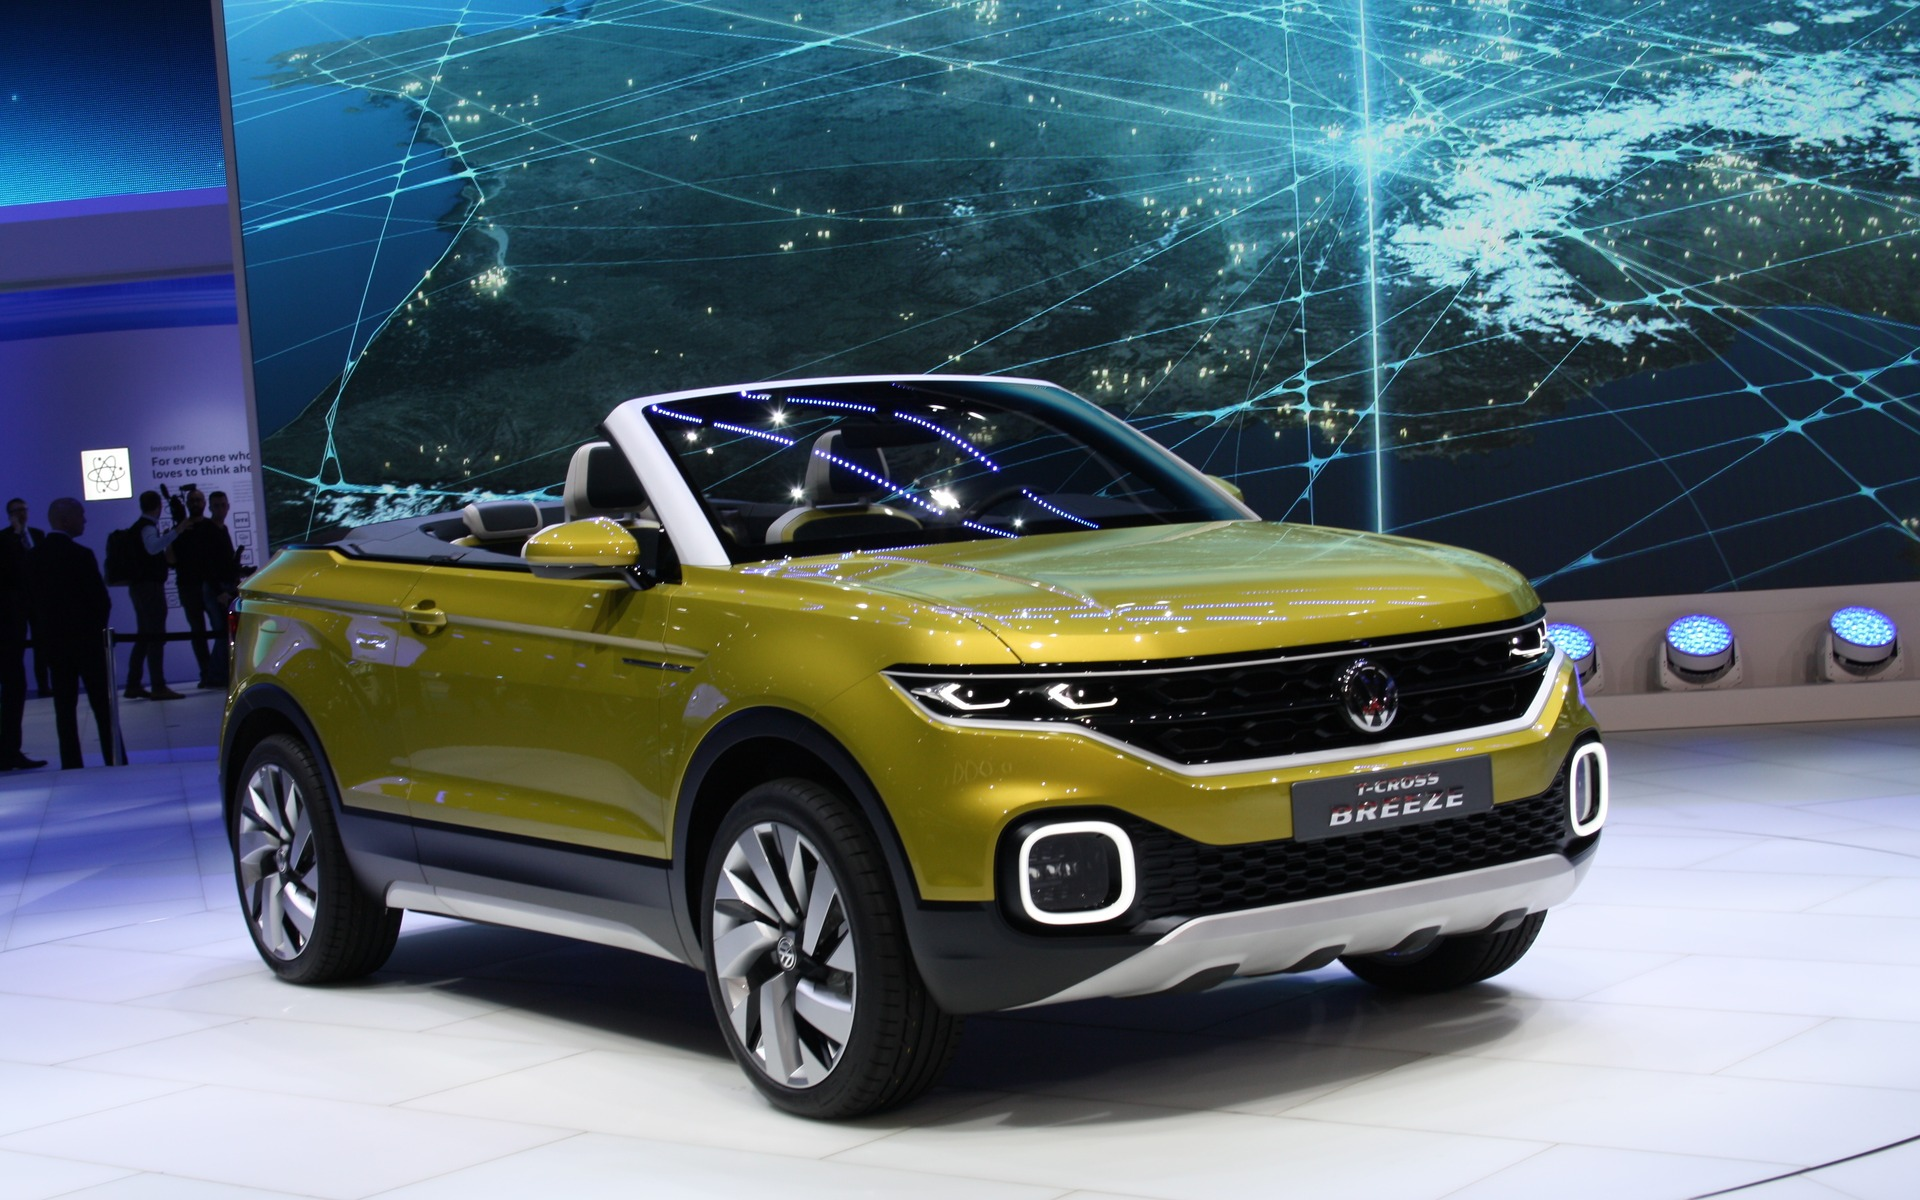 volkswagen t cross breeze makes world debut in geneva the car guide. Black Bedroom Furniture Sets. Home Design Ideas